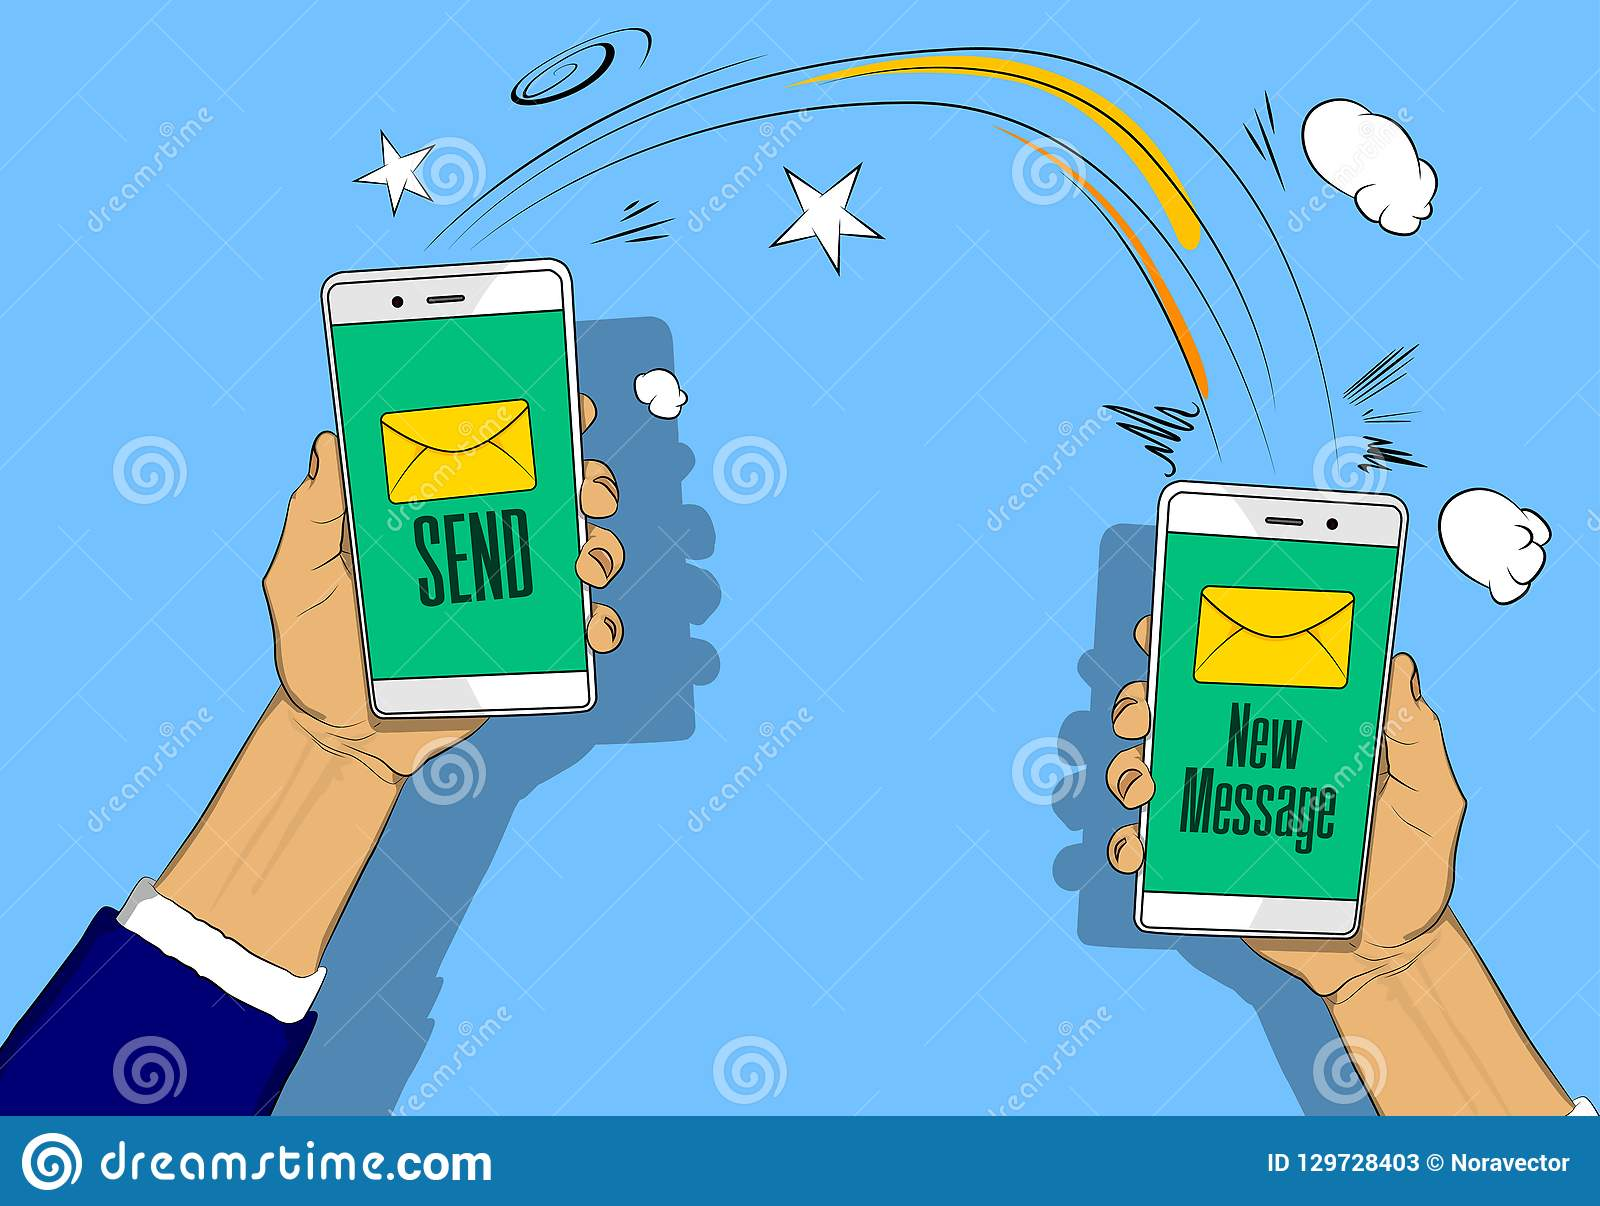 Hands holding phones with letter, send and new message button on the screen.